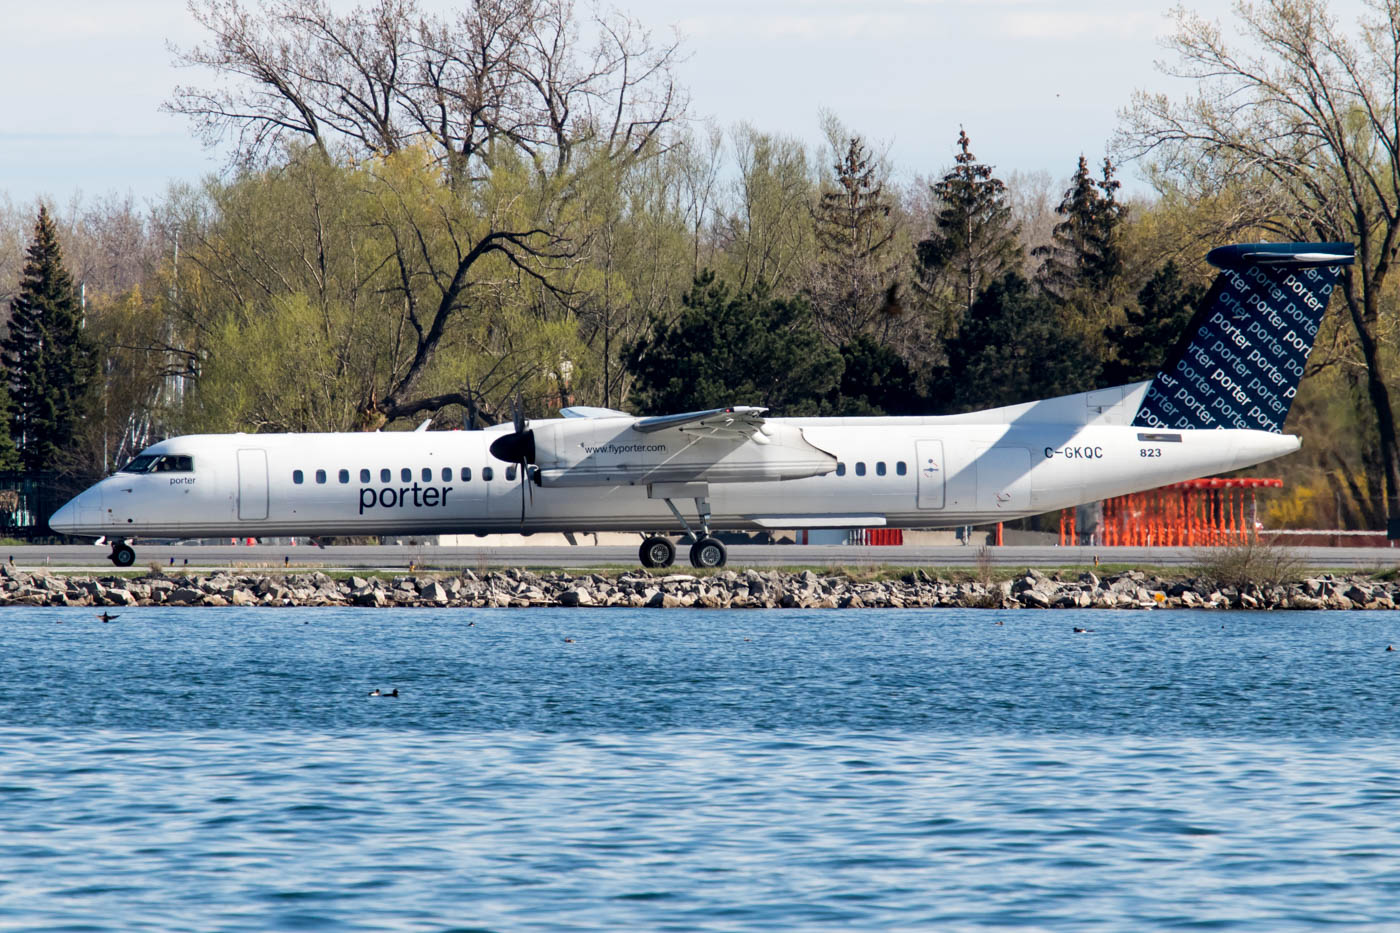 Porter Airlines Dash 8 Billy Bishop Toronto City Airport